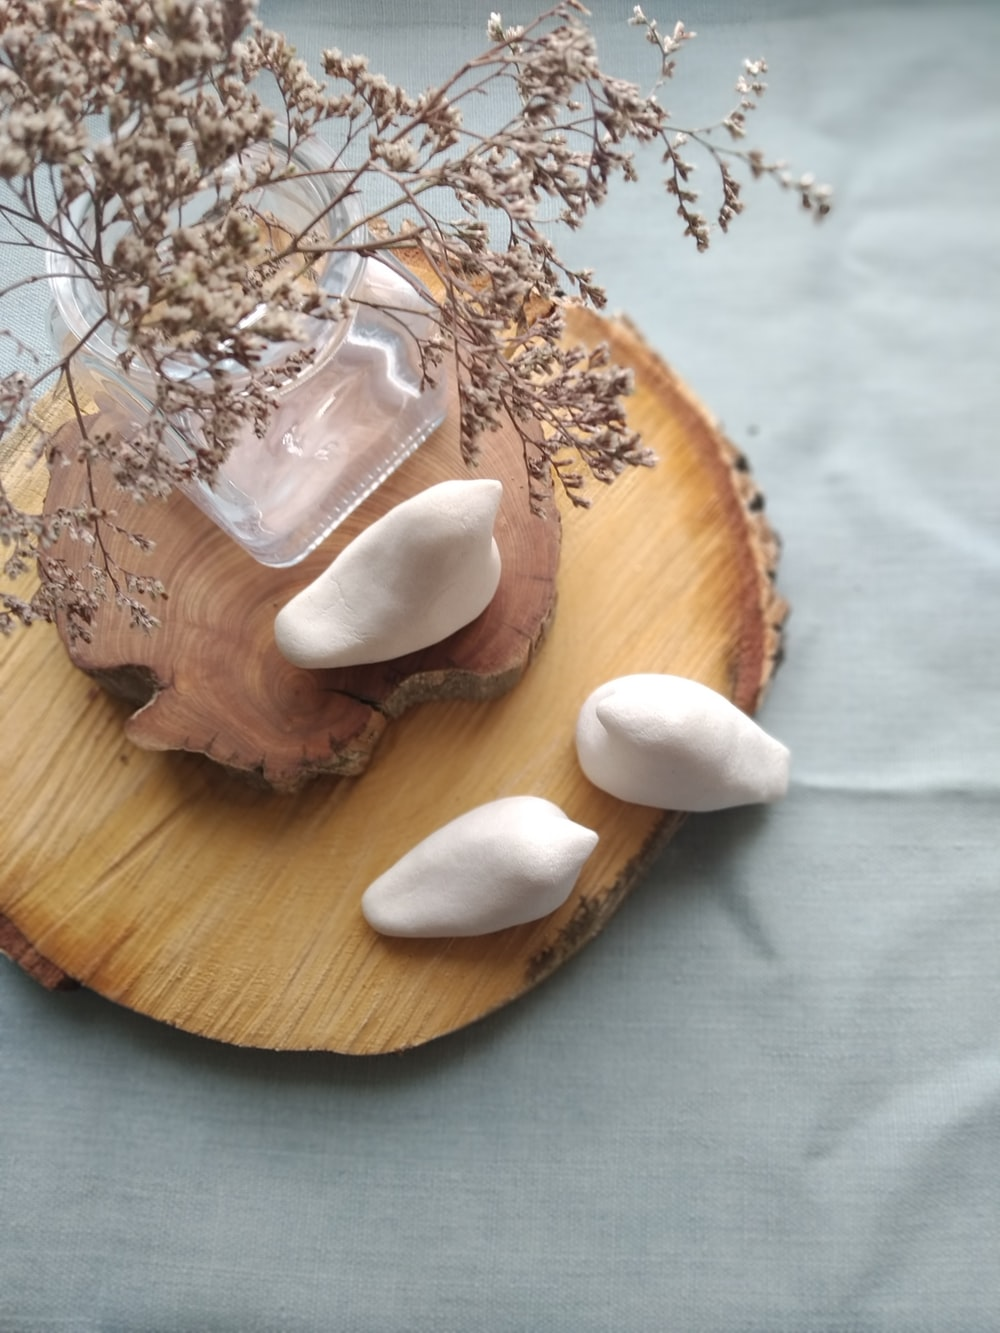 sliced bread with white cream on brown wooden round plate